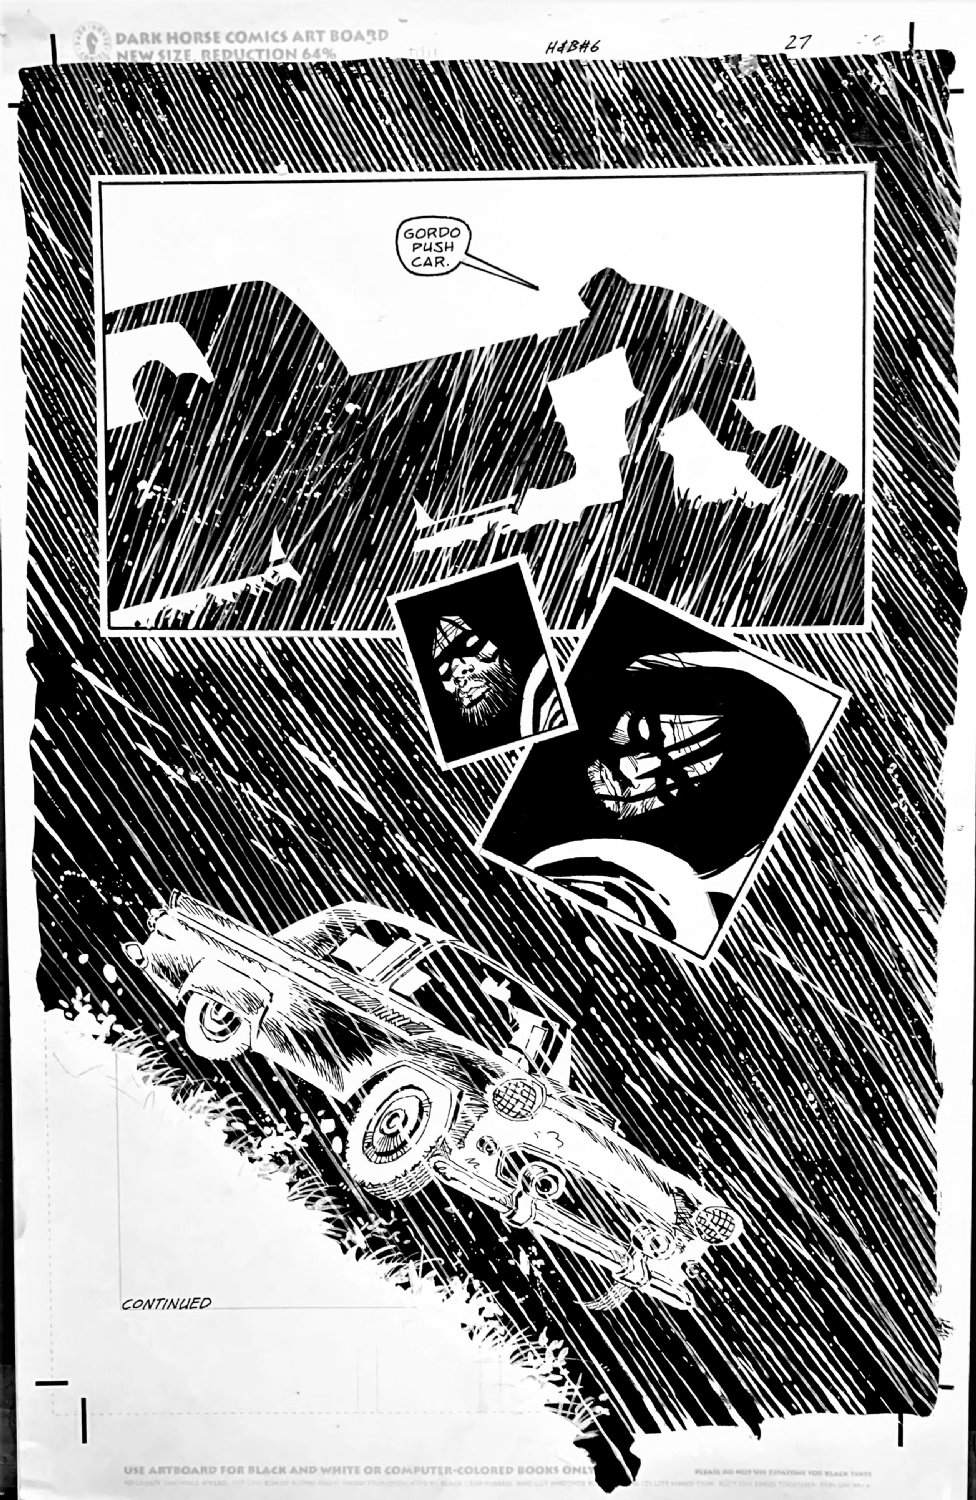 Sin City: Hell and Back #6 P 27 SPLASH (WALLACE! THIS SPLASH FEATURED IN THE 'ART OF FRANK MILLER' BOOK!) 1999